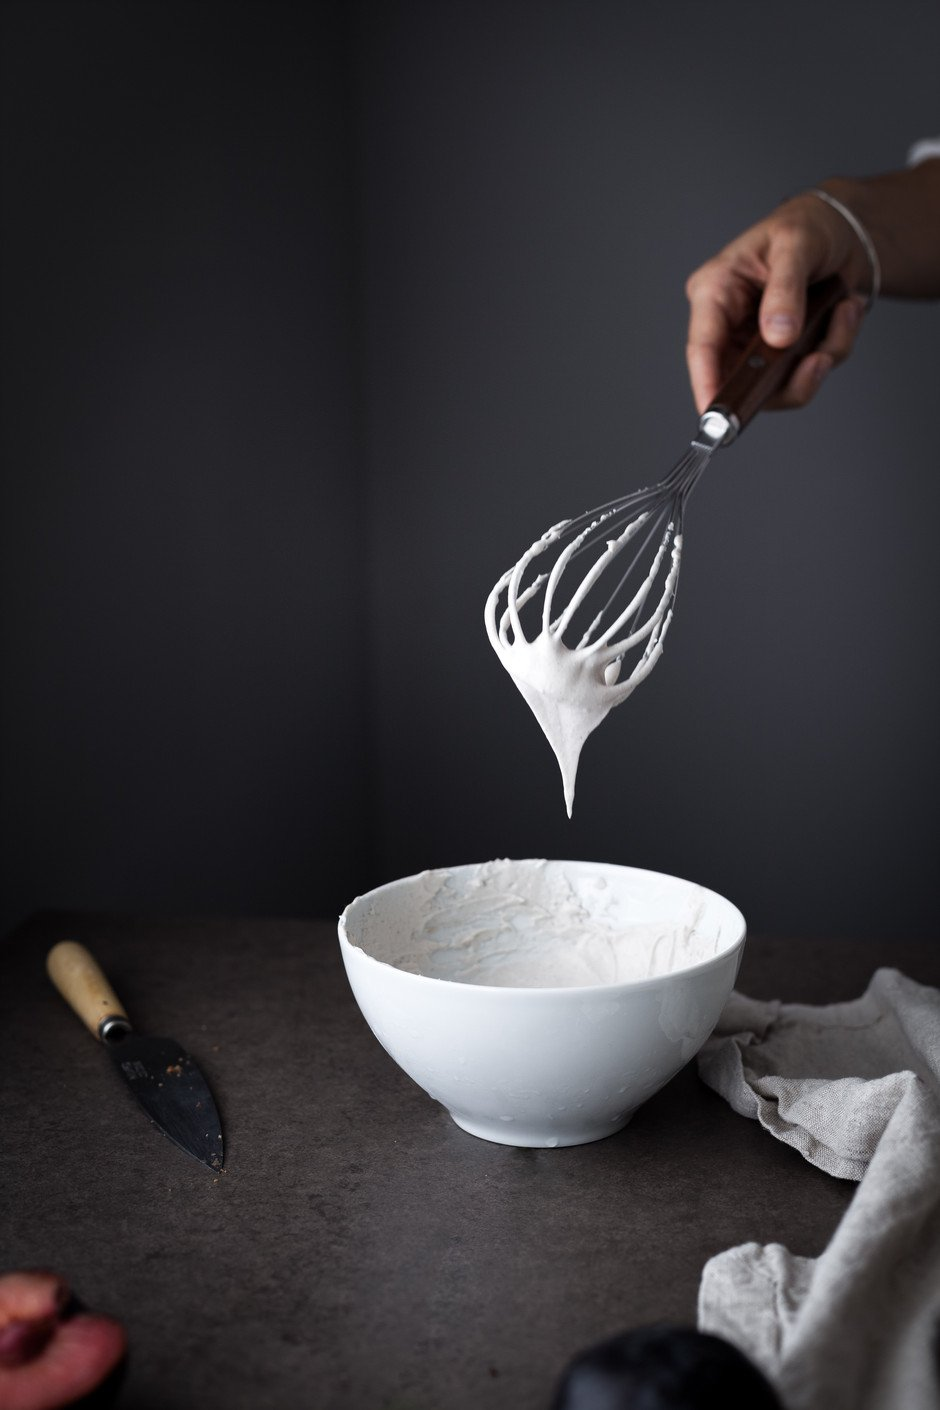 a hand holding a whisk with coconut cream dripping off it.